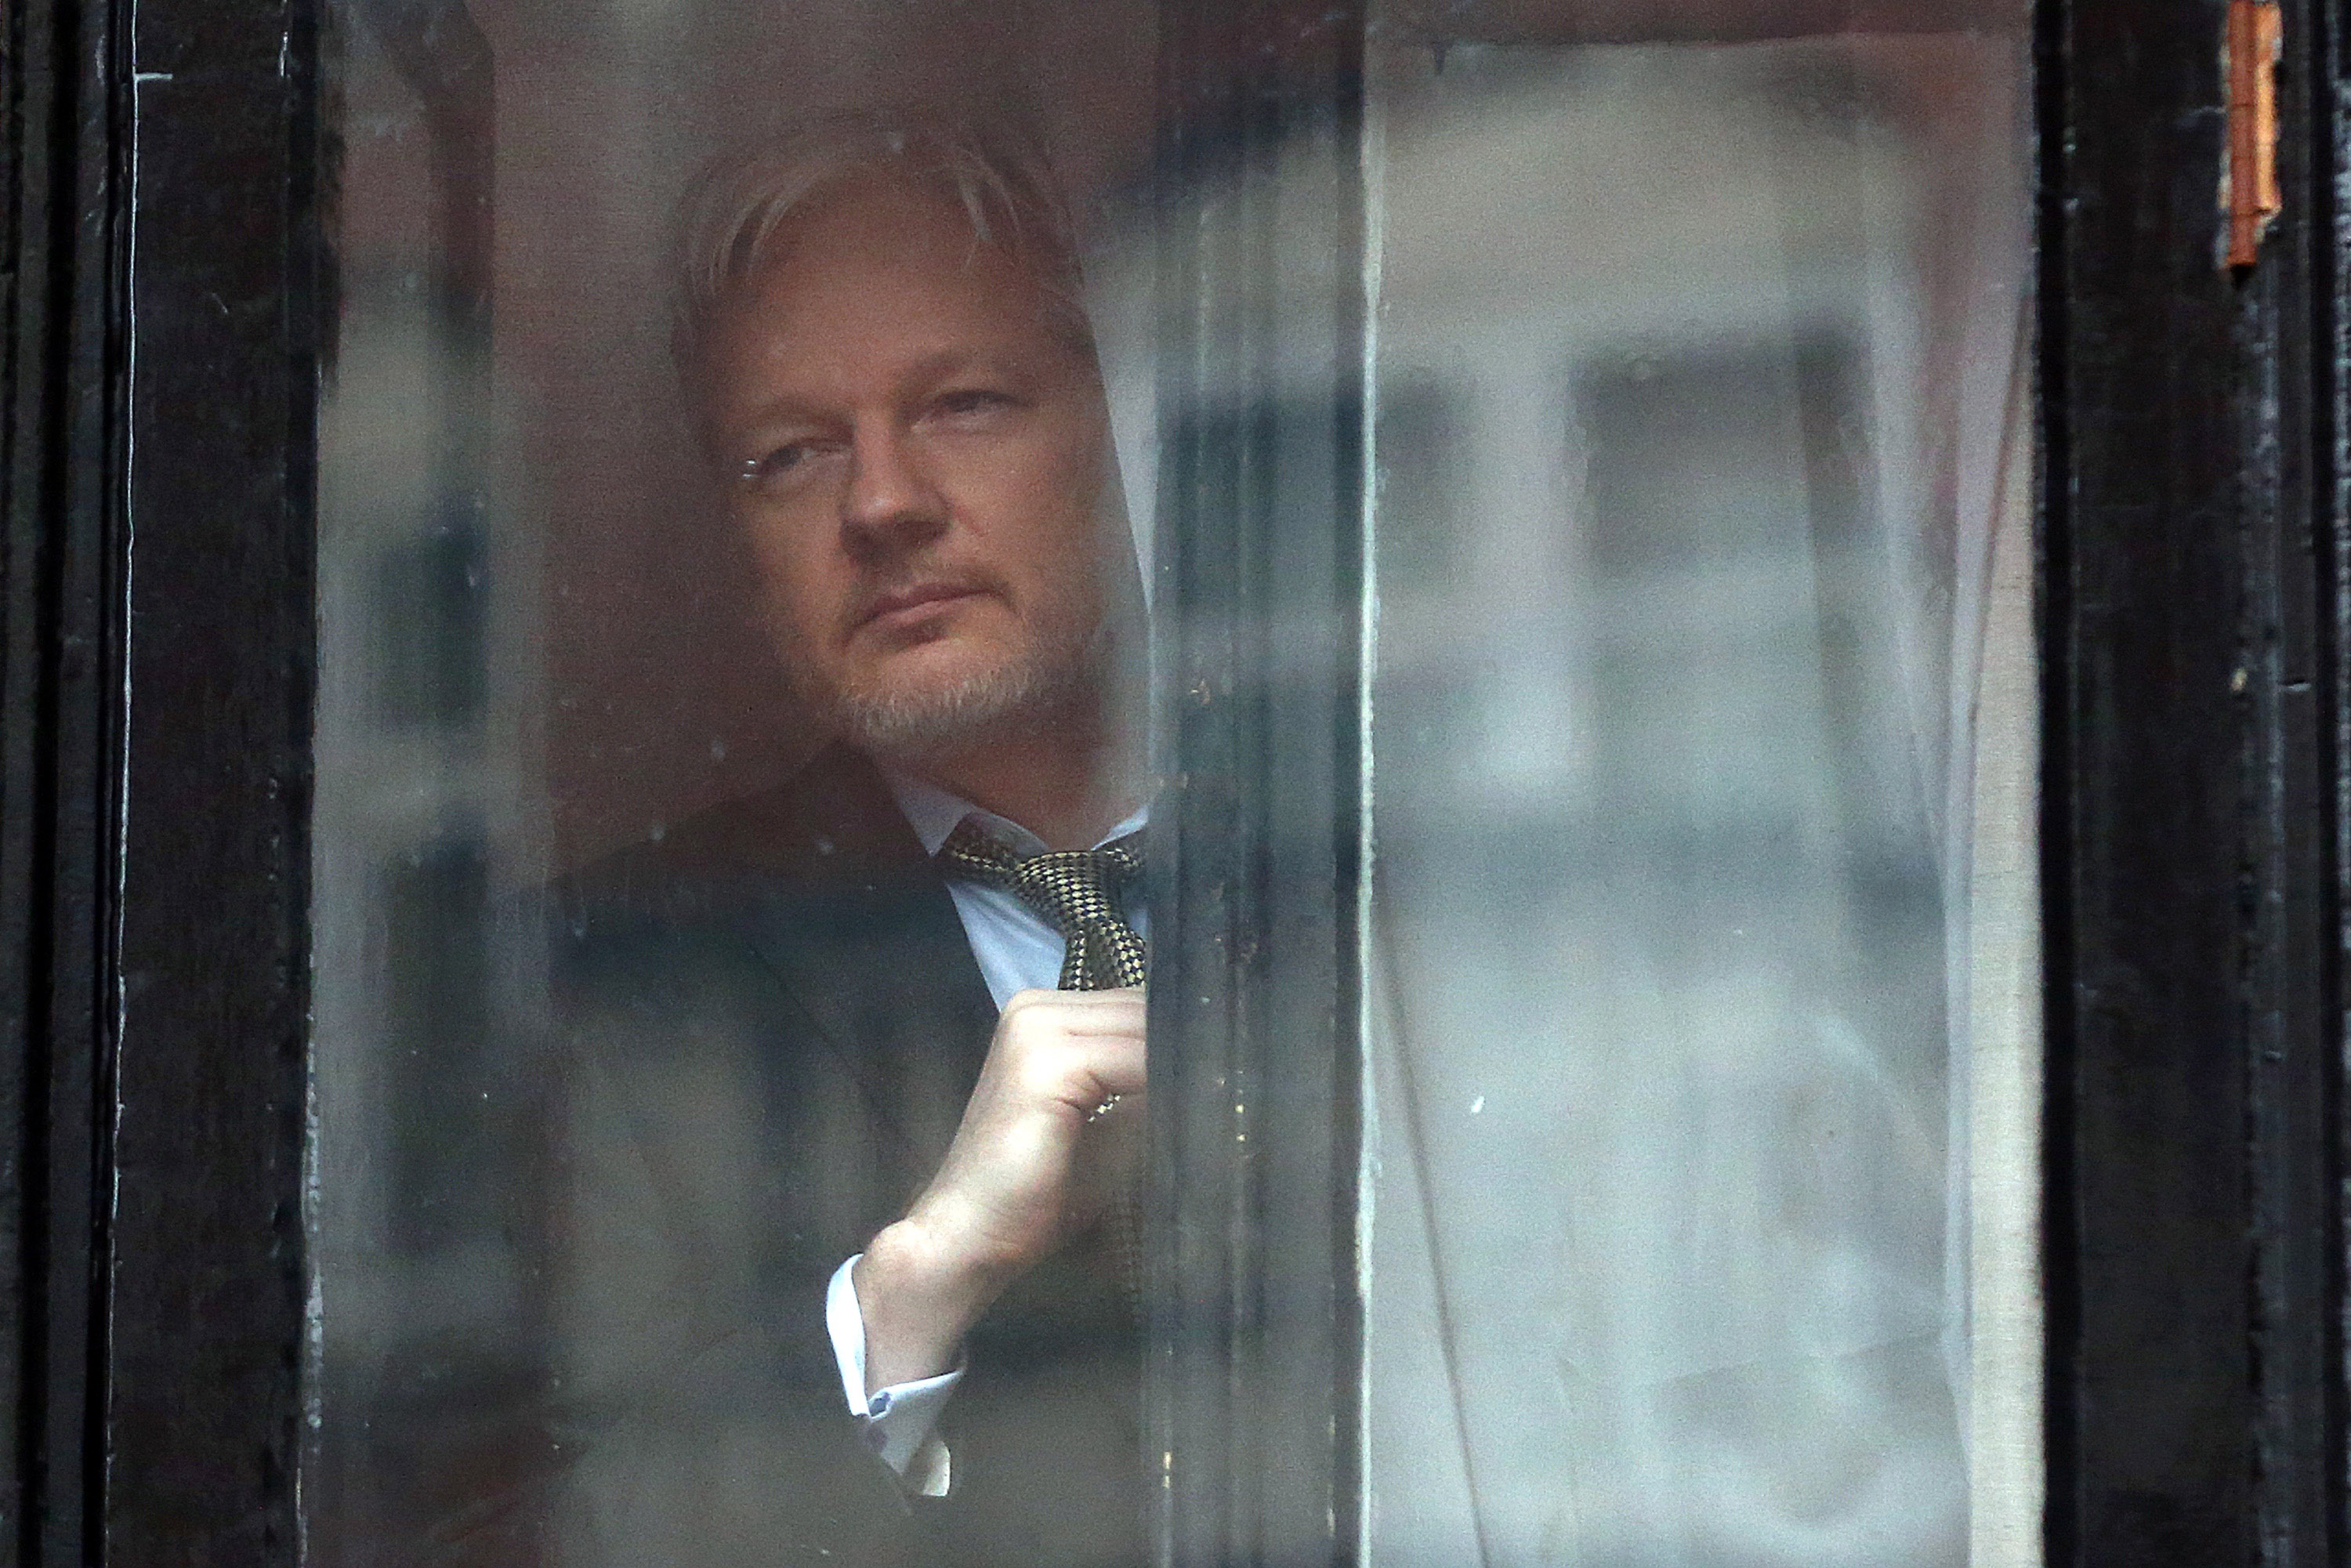 WikiLeaks founder Julian Assange prepares to speak from the balcony of the Ecuadorian embassy in London, where he continues to seek asylum following an extradition request from Sweden in 2012, on Feb. 5, 2016